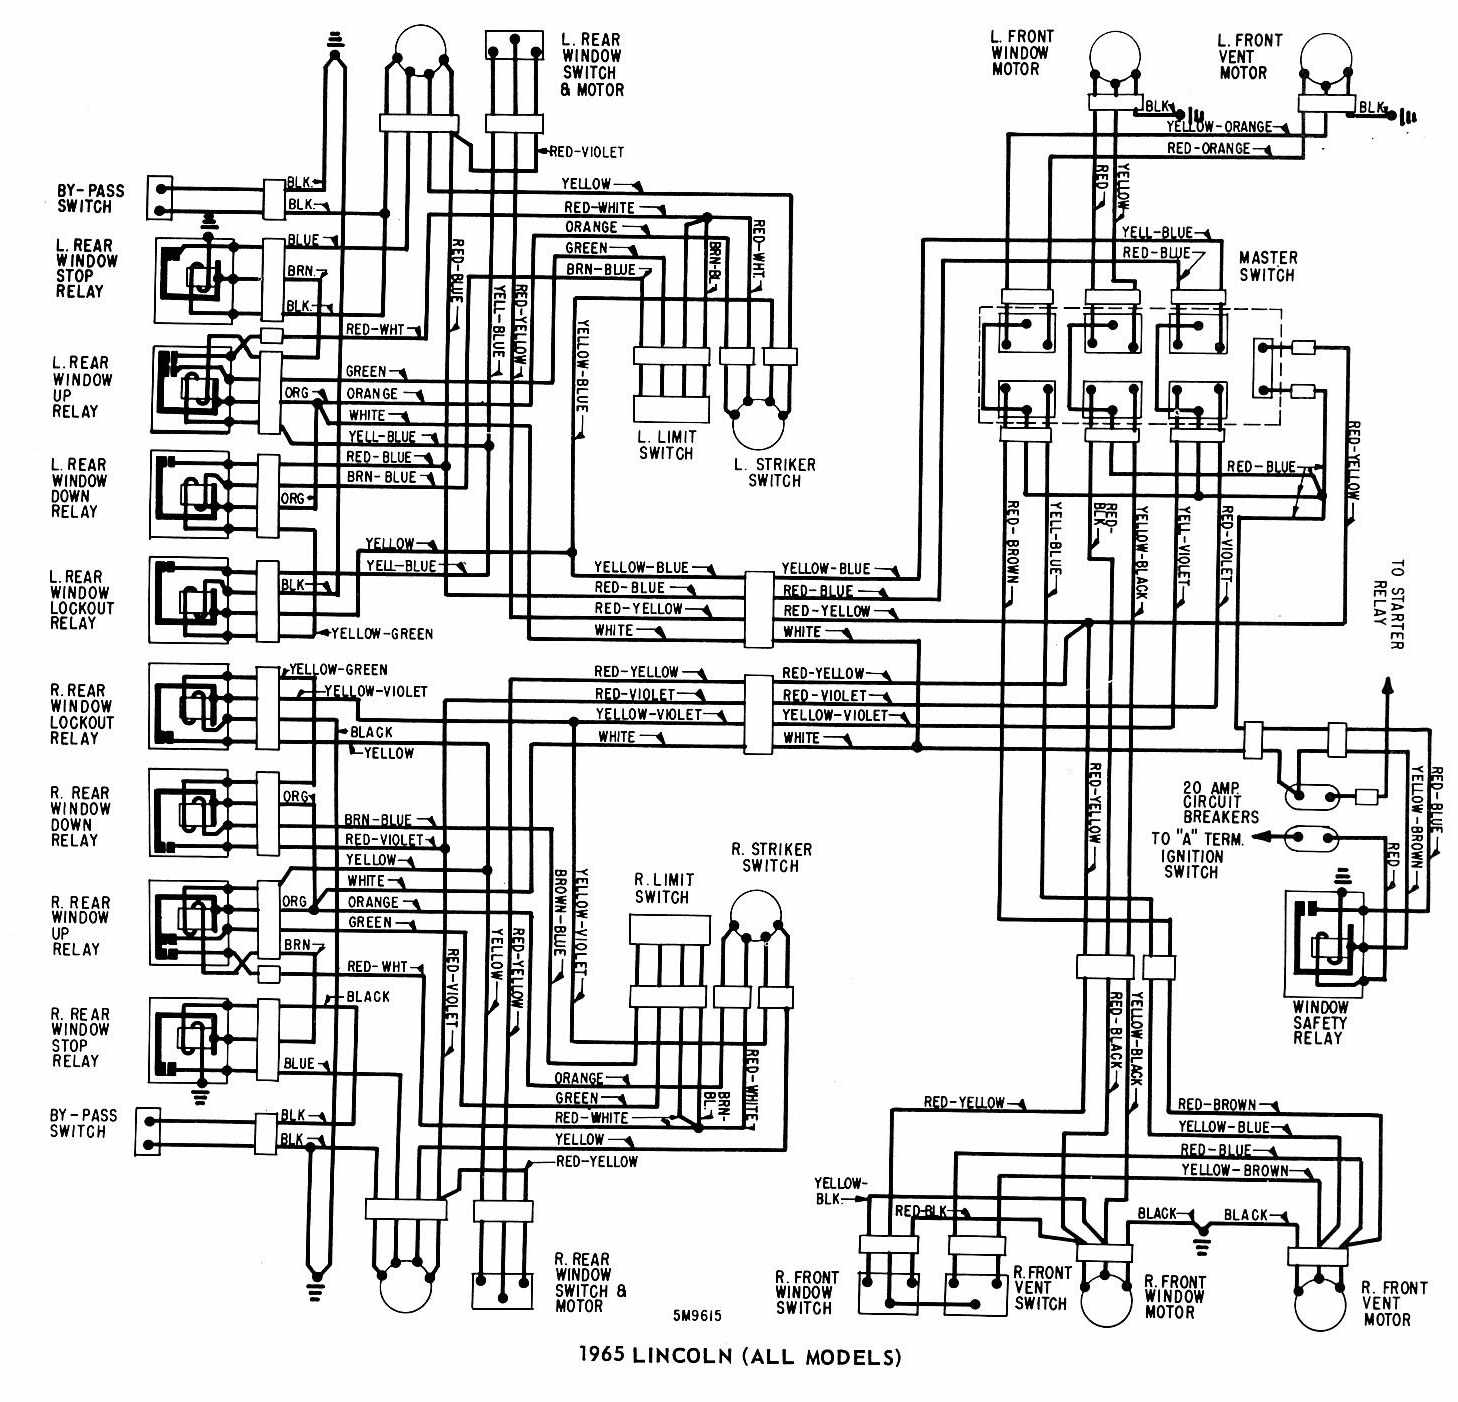 lincoln (all models) 1965 windows wiring diagram | all ... 2000 ford windstar power windows wiring diagram